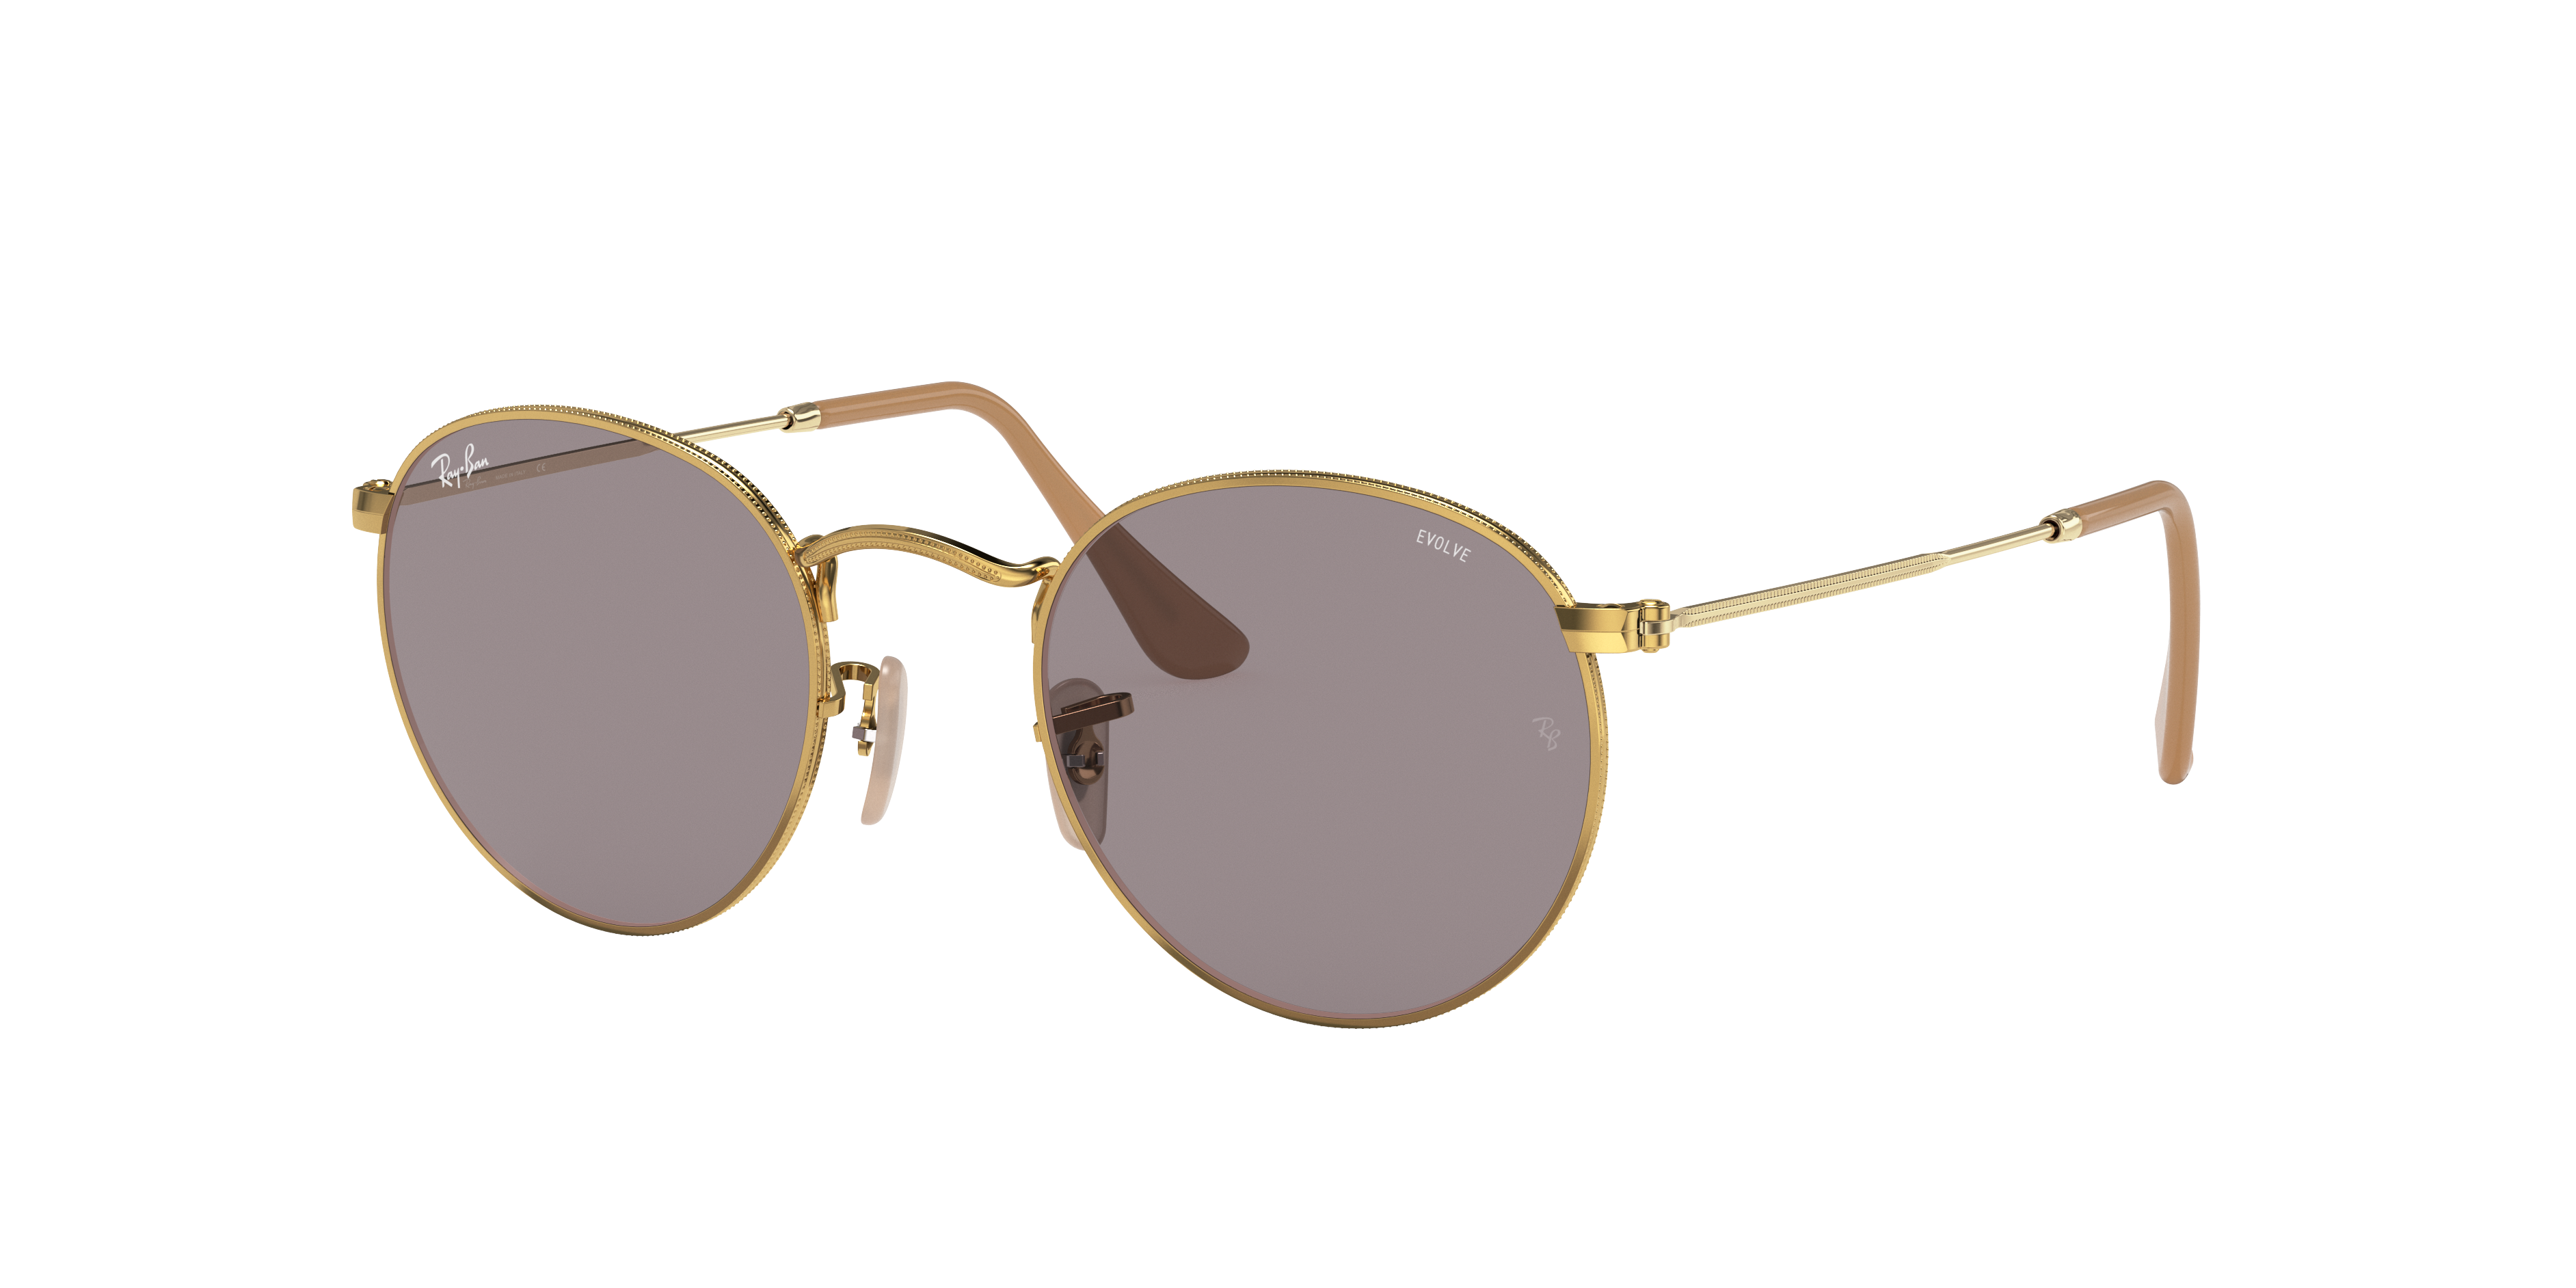 Ray-Ban Round Washed Evolve Gold, Gray Lenses - RB3447